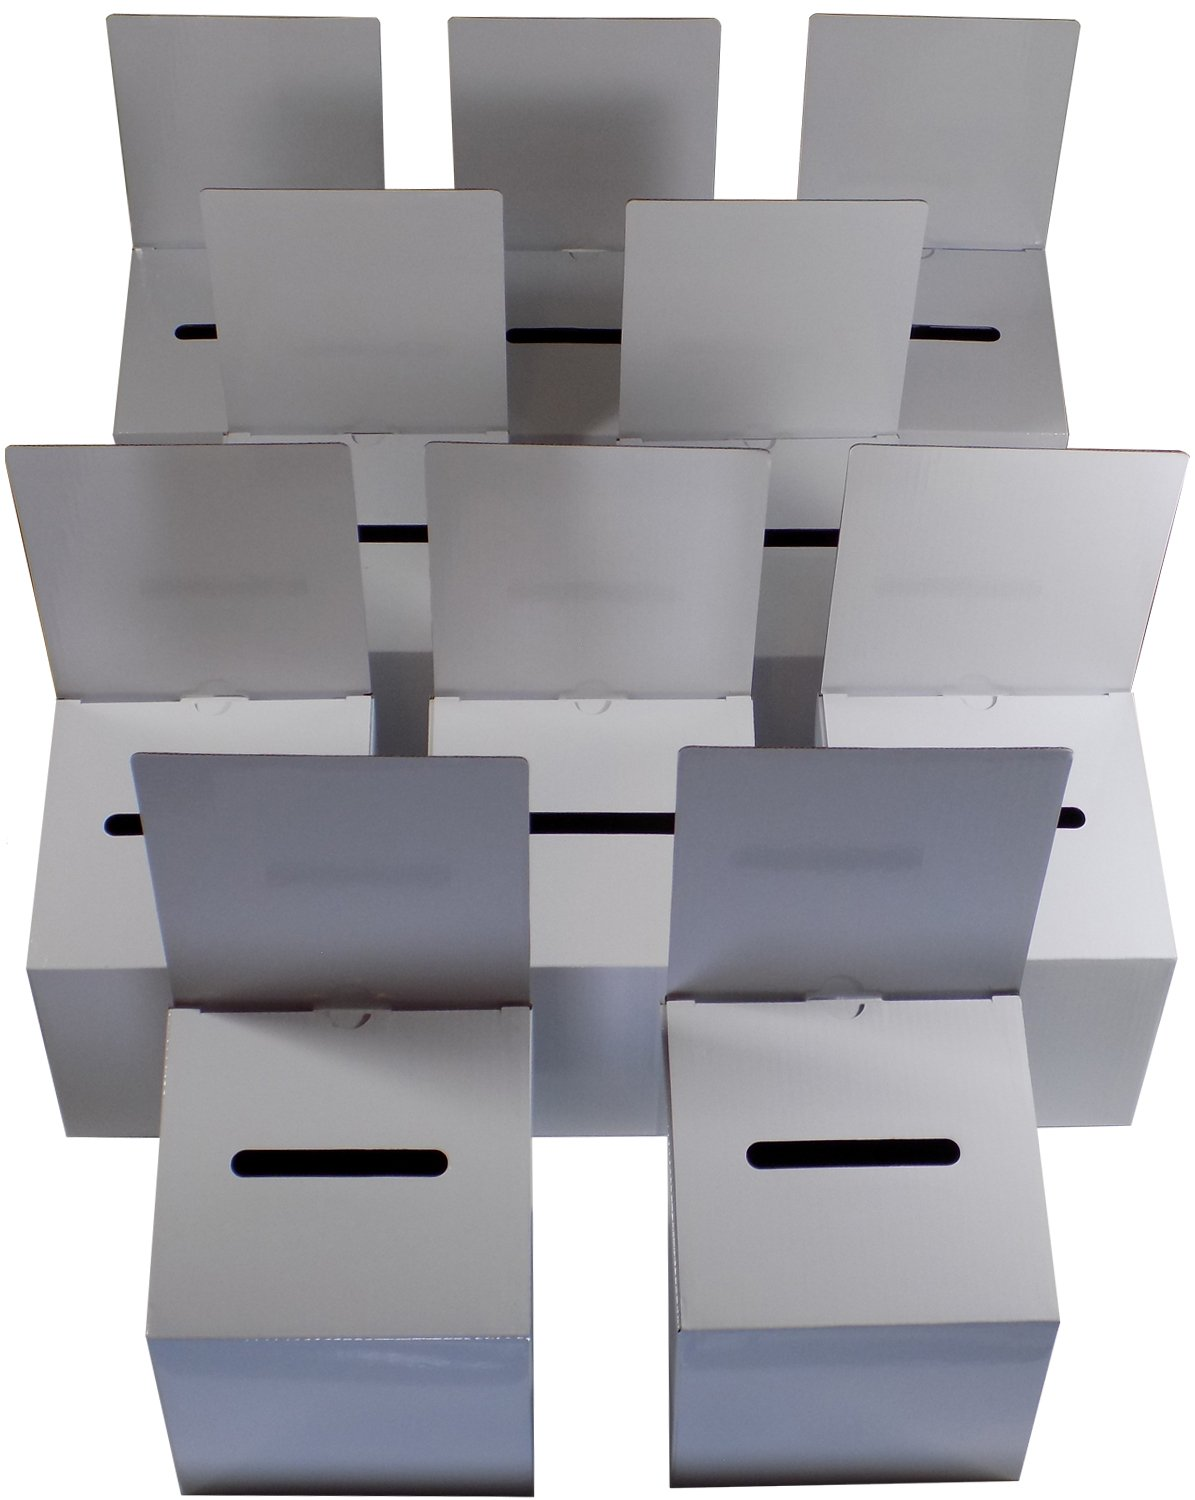 10 Pack Ballot Boxes Medium Size Cardboard Glossy White with Blank Labels by Morprofit Shop Supplies